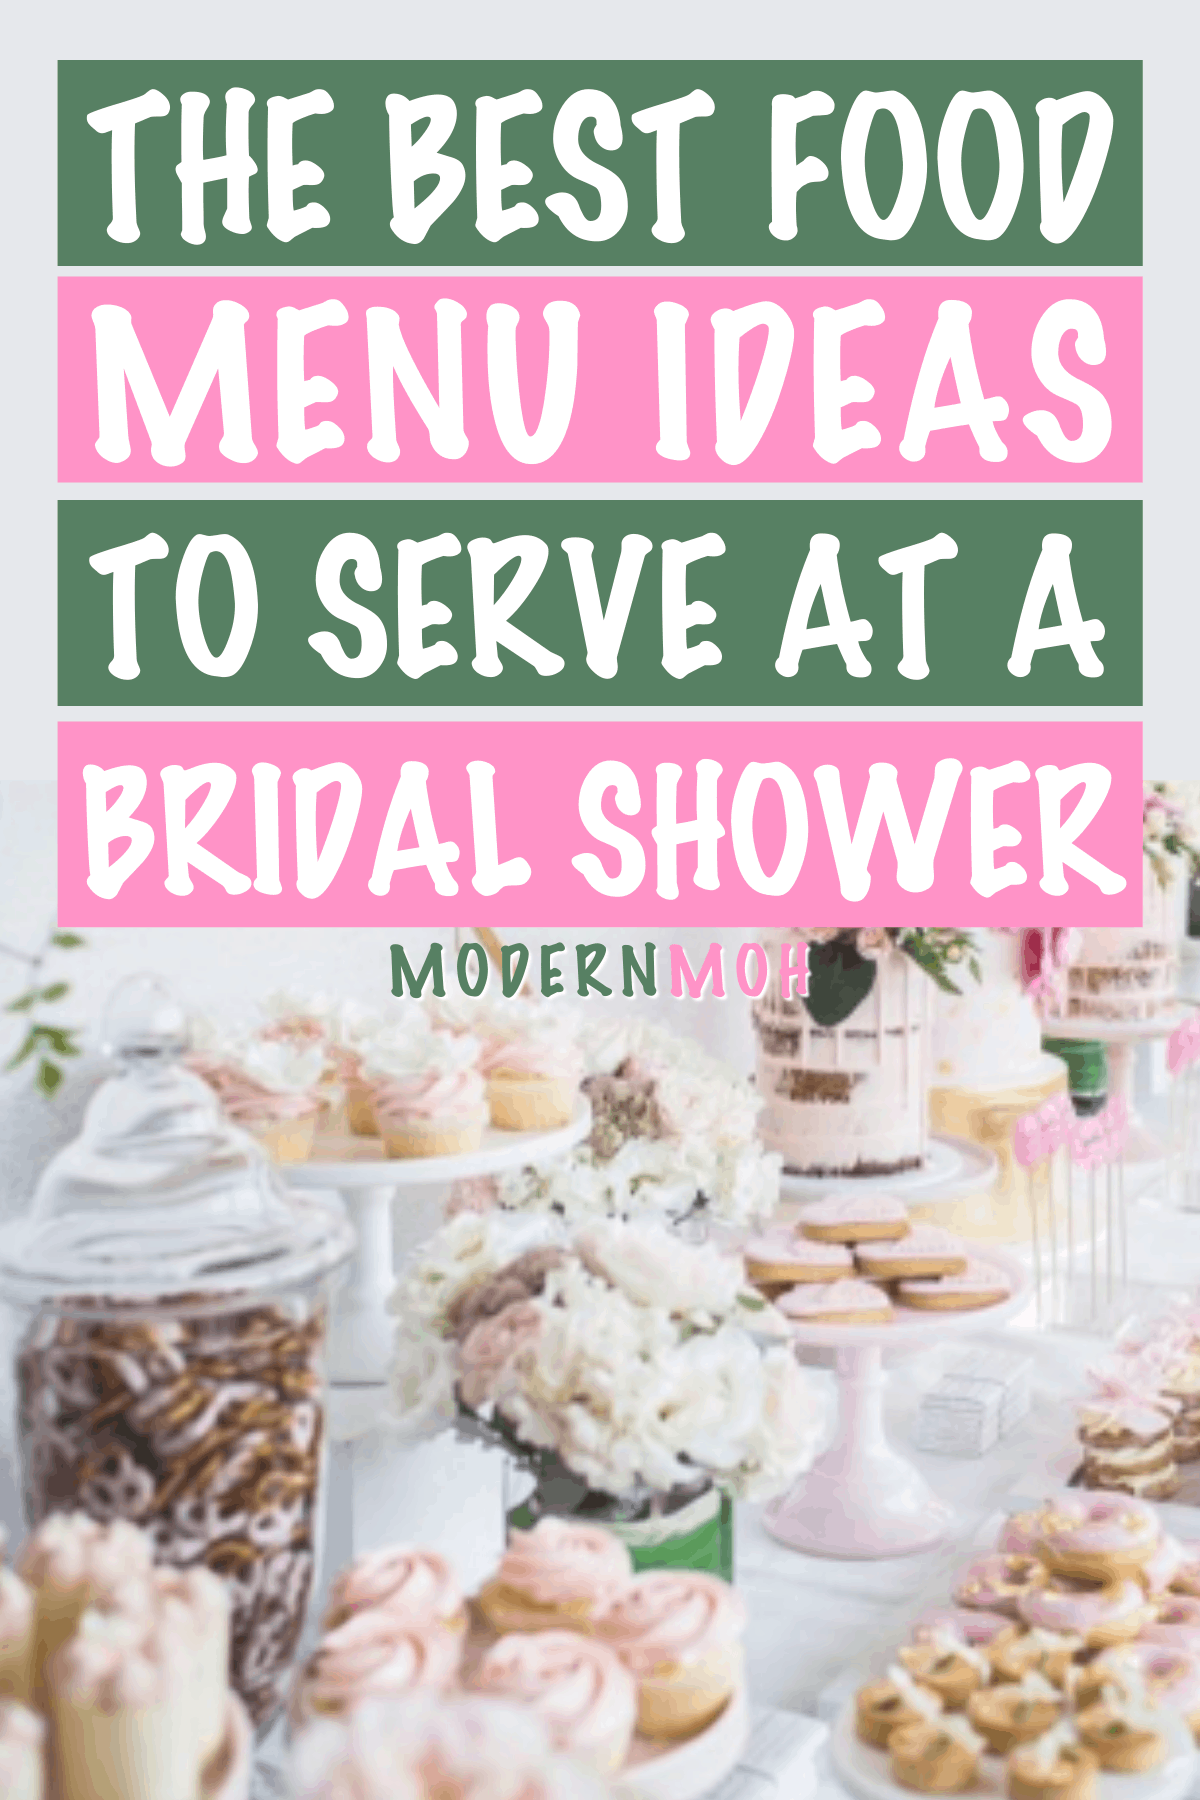 Bridal Shower Food Menu: A Basic Breakdown of Must-Have Eats and Treats